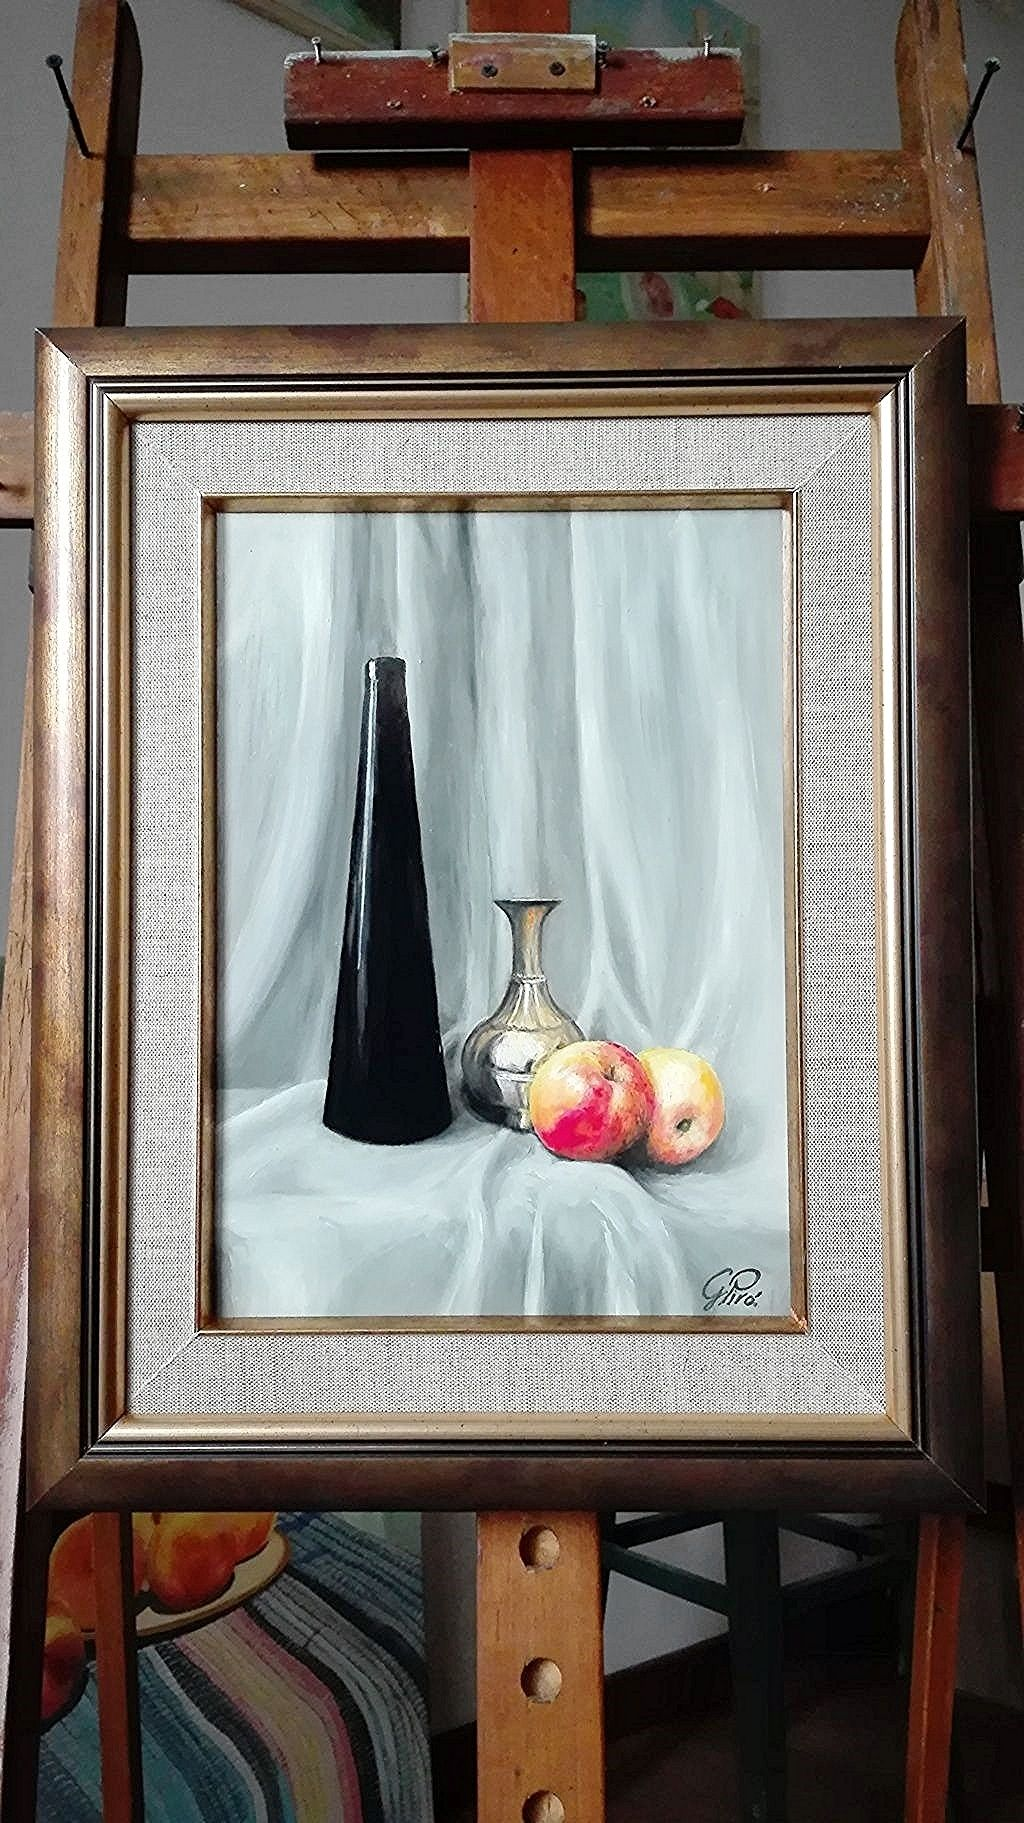 Oil Painting, Glass, Apples, and Brass, Gregory Pyra Piro